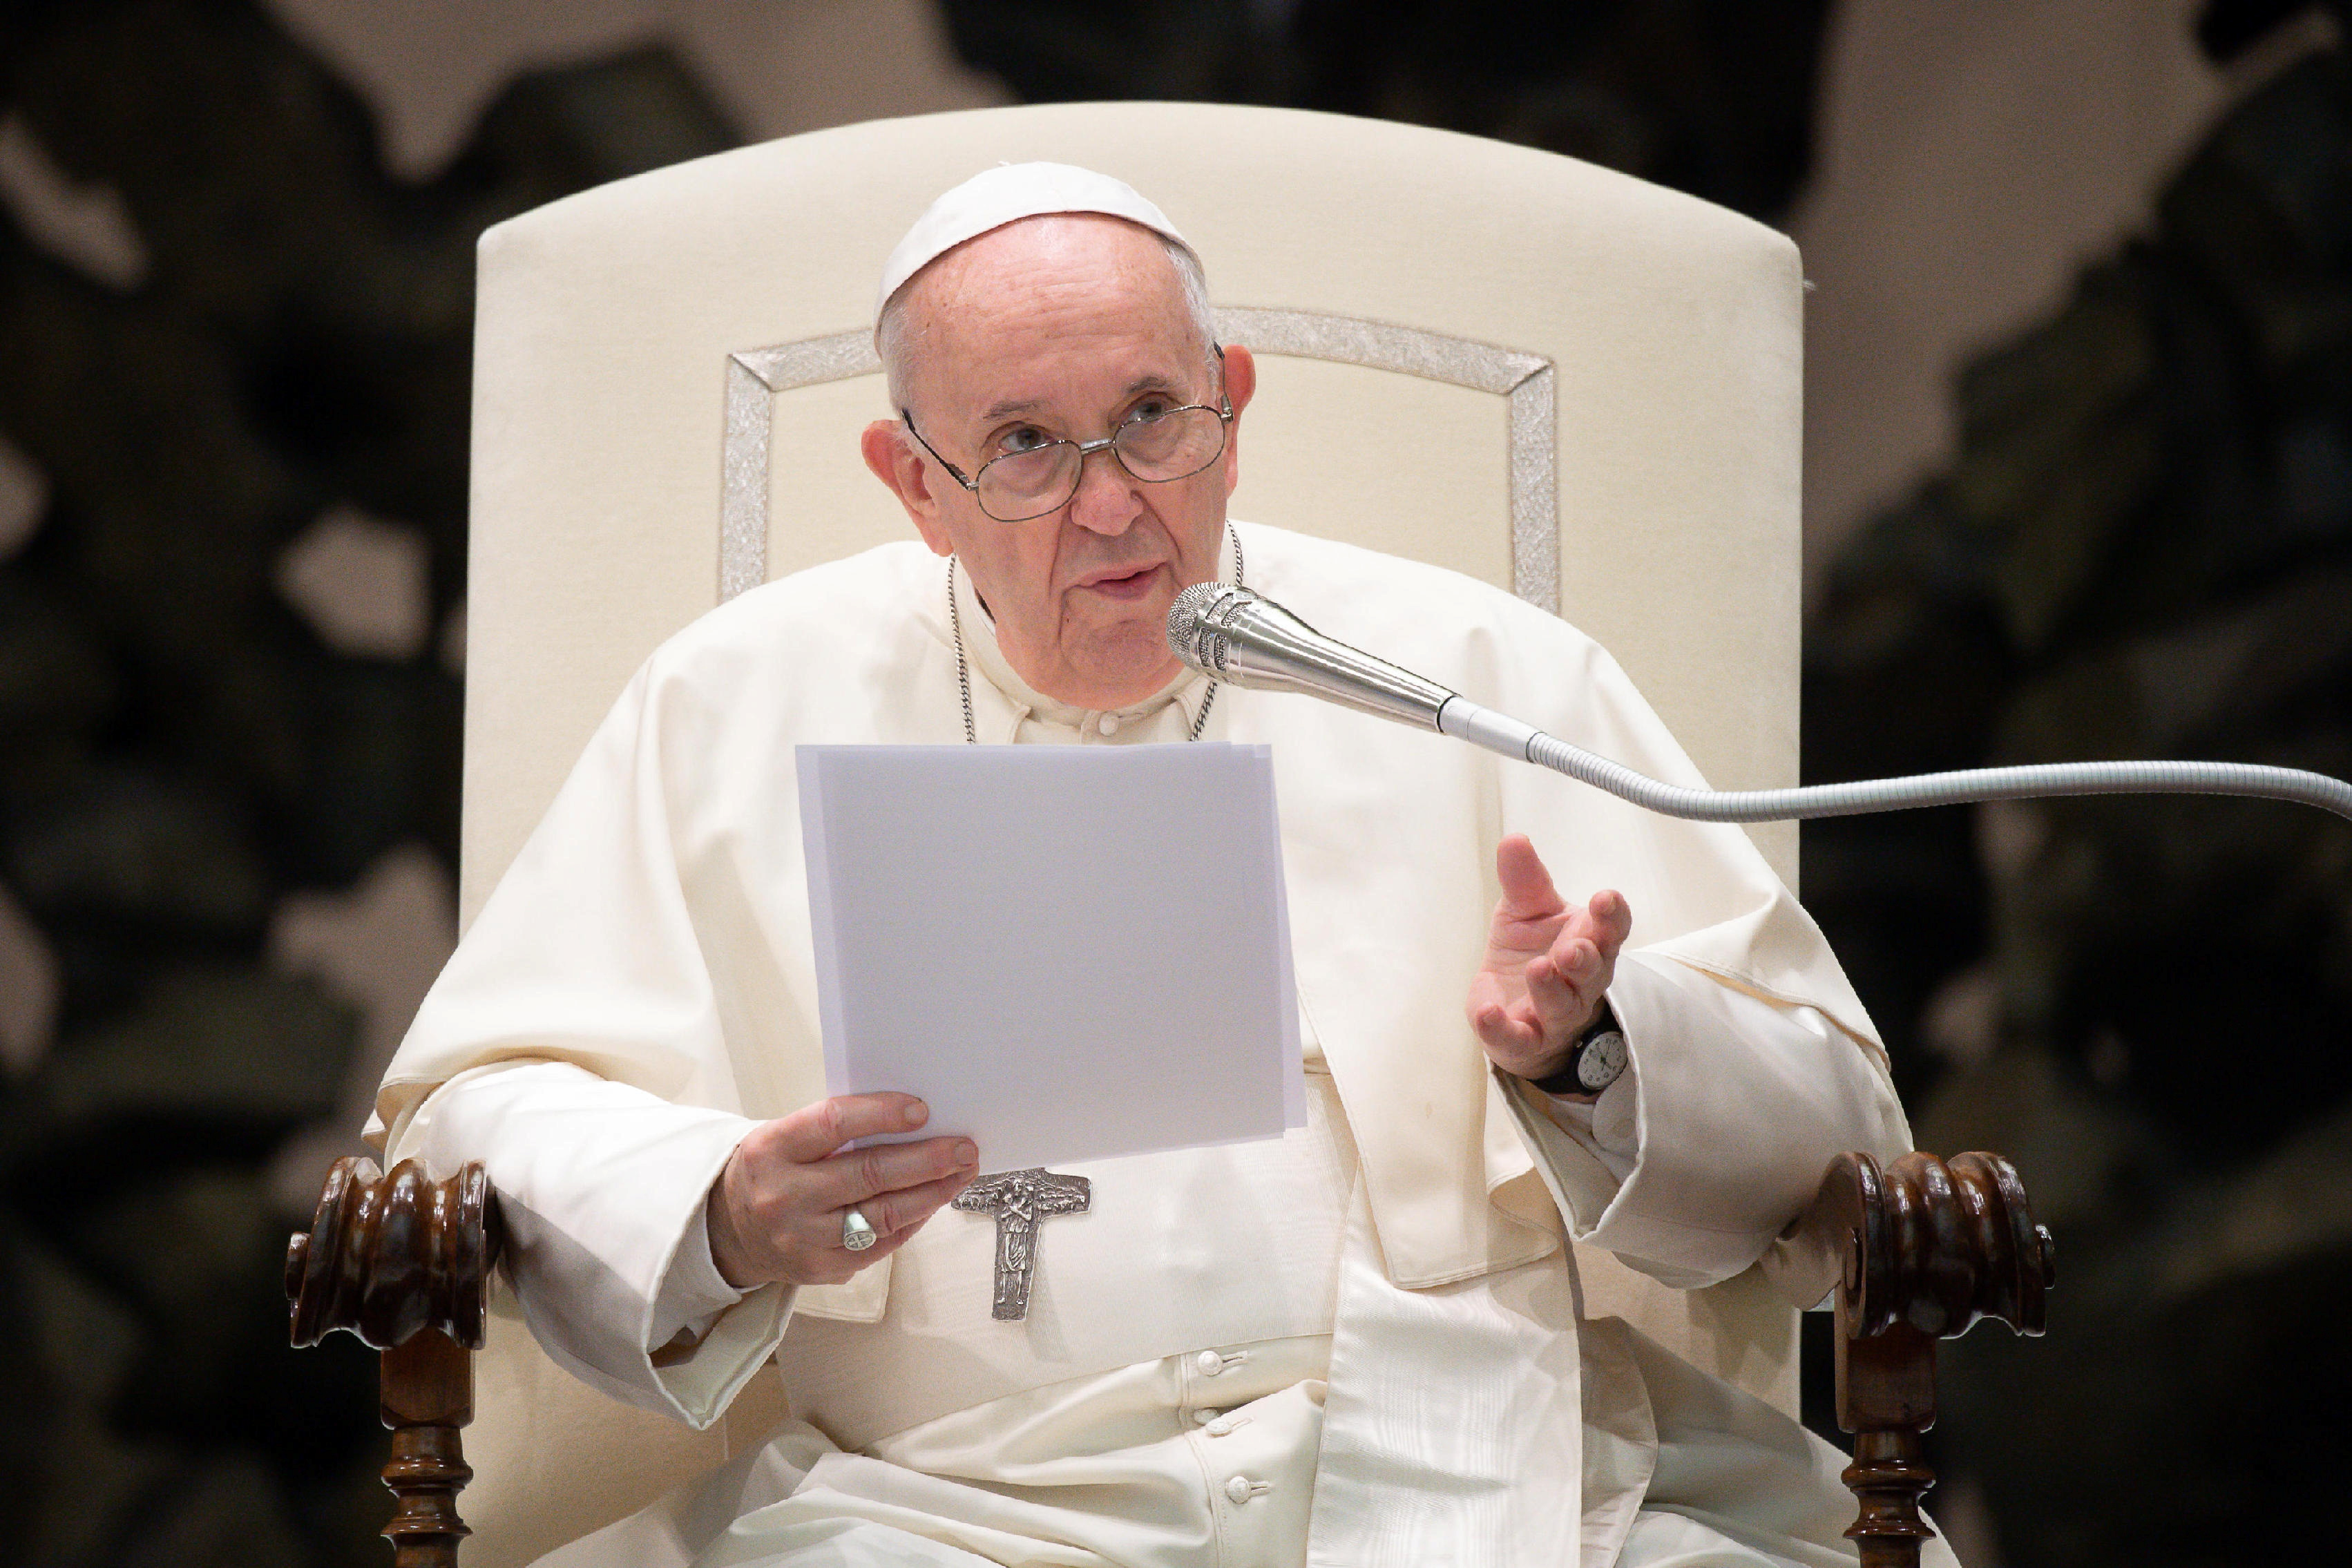 Pope Francis urges everyone to get COVID-19 vaccines for the good of all